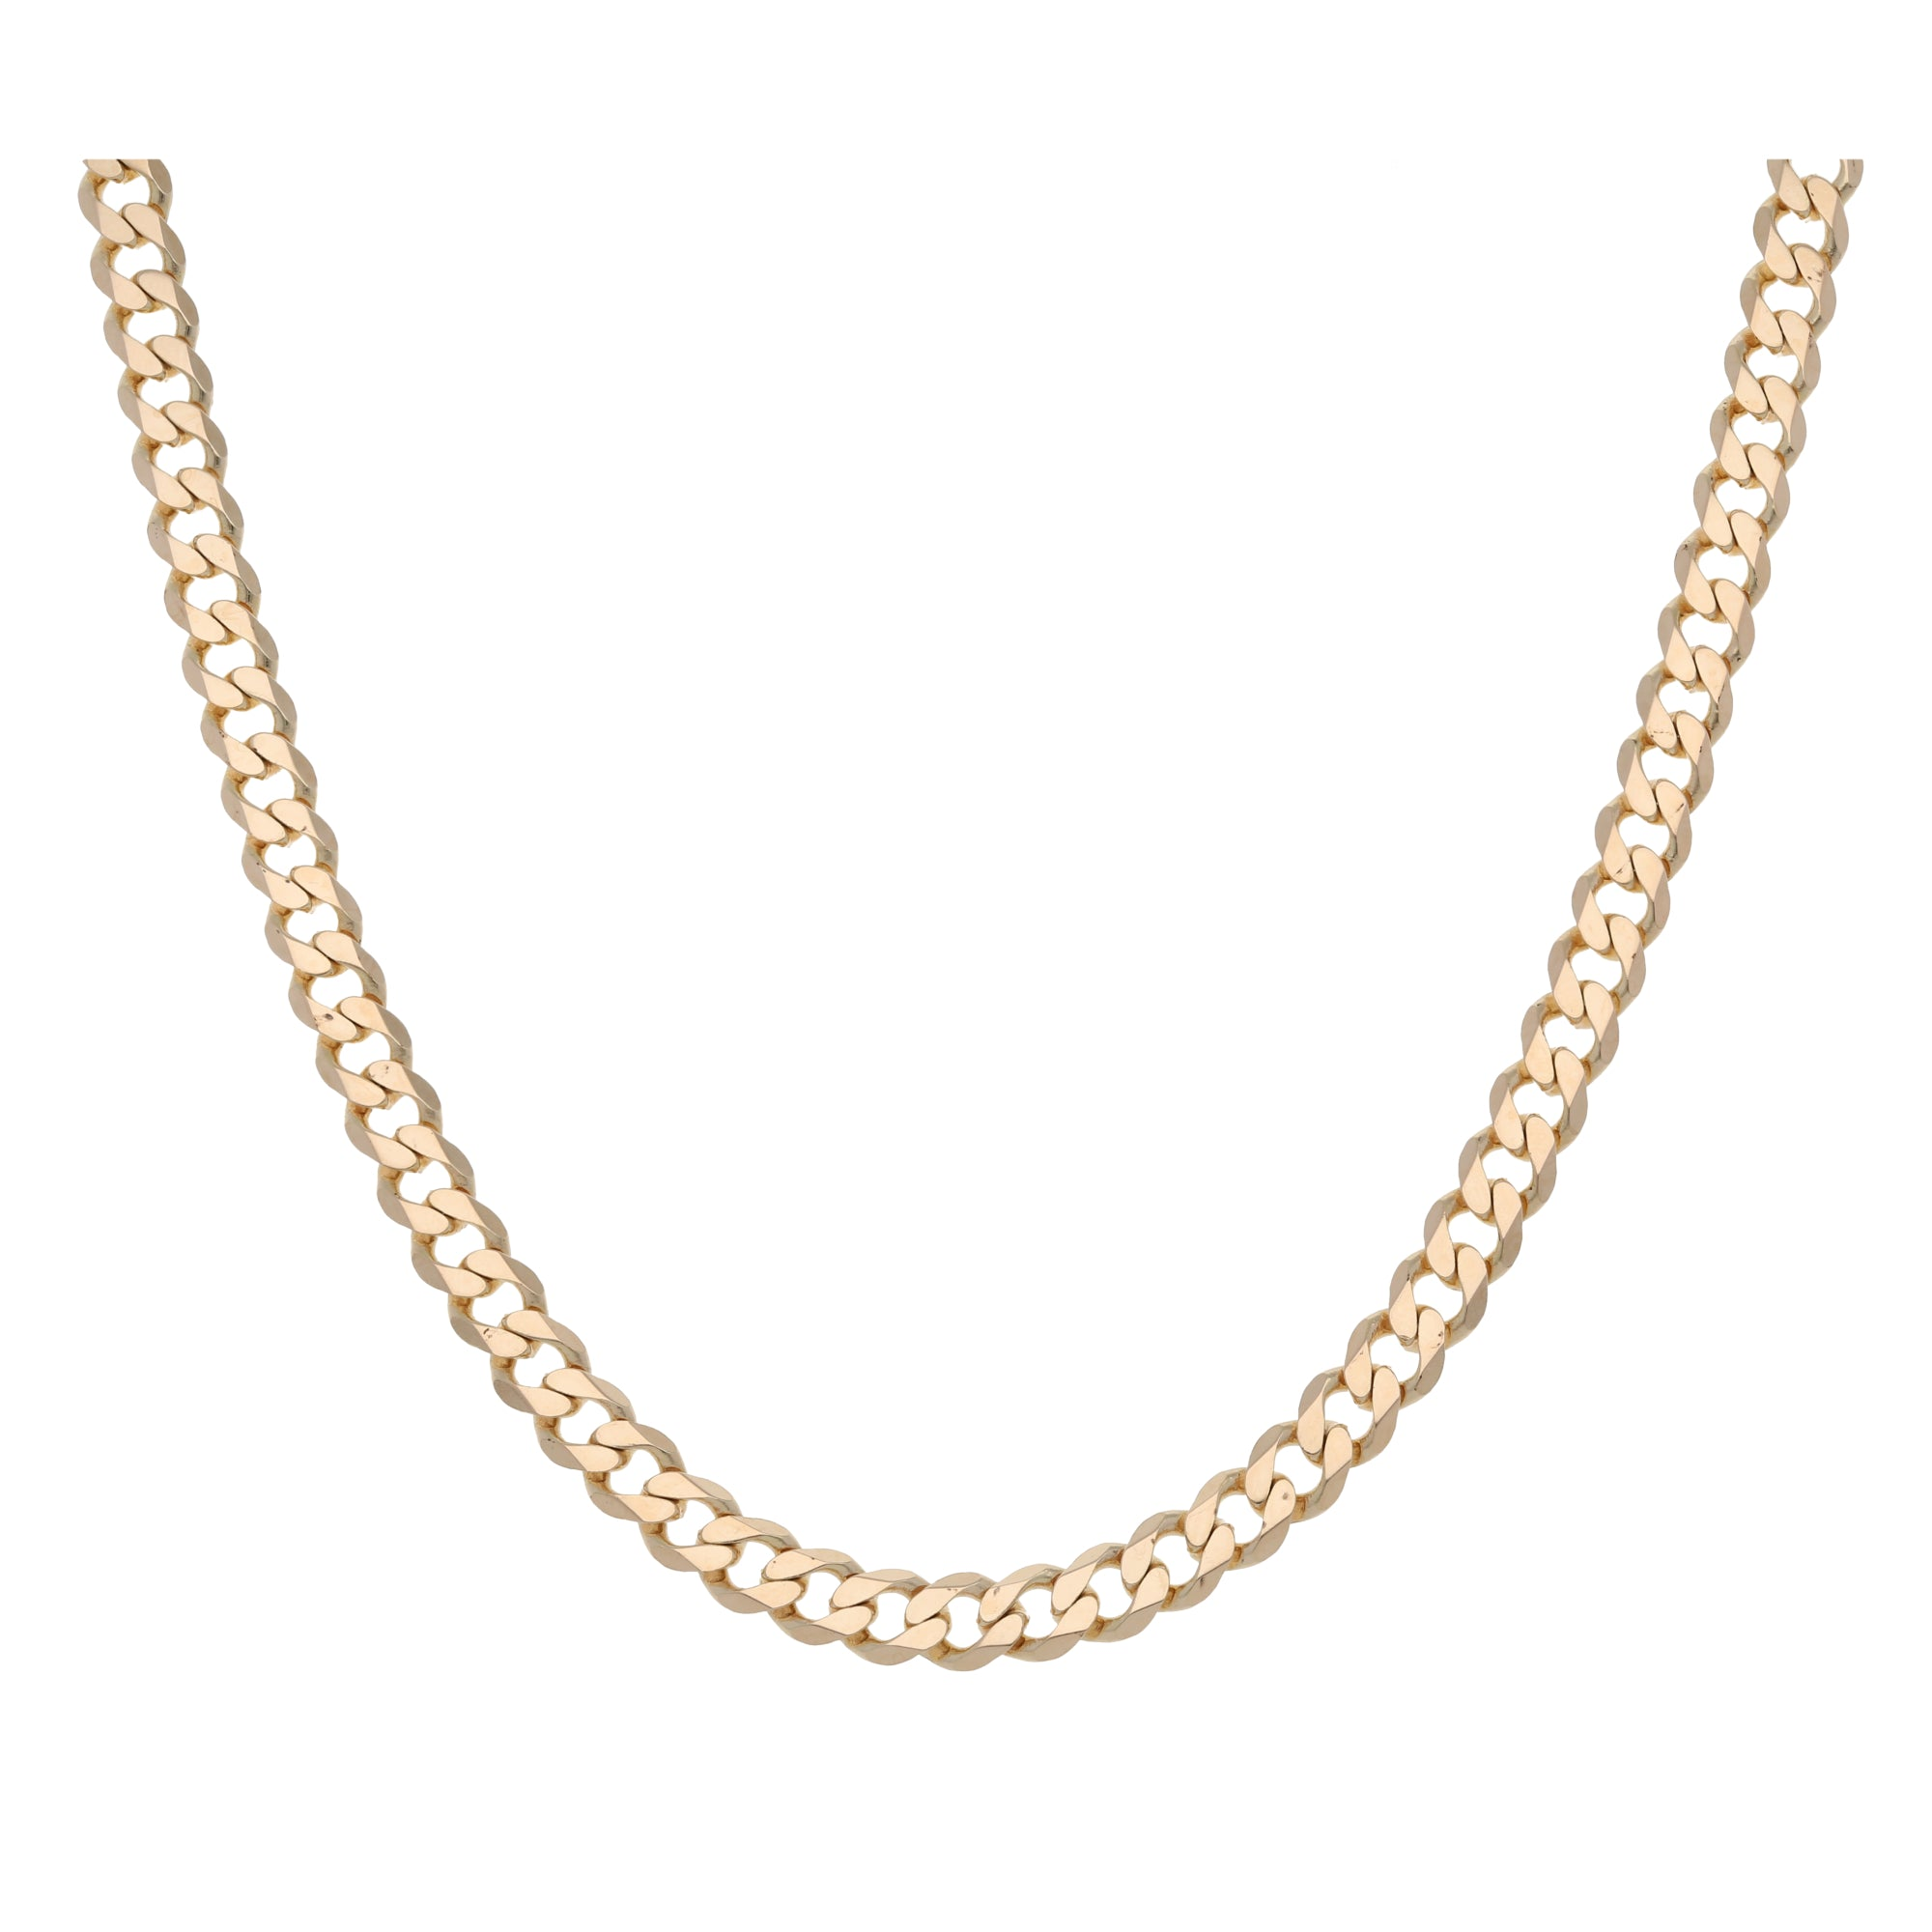 9ct Gold Ladies Curb Chain 20